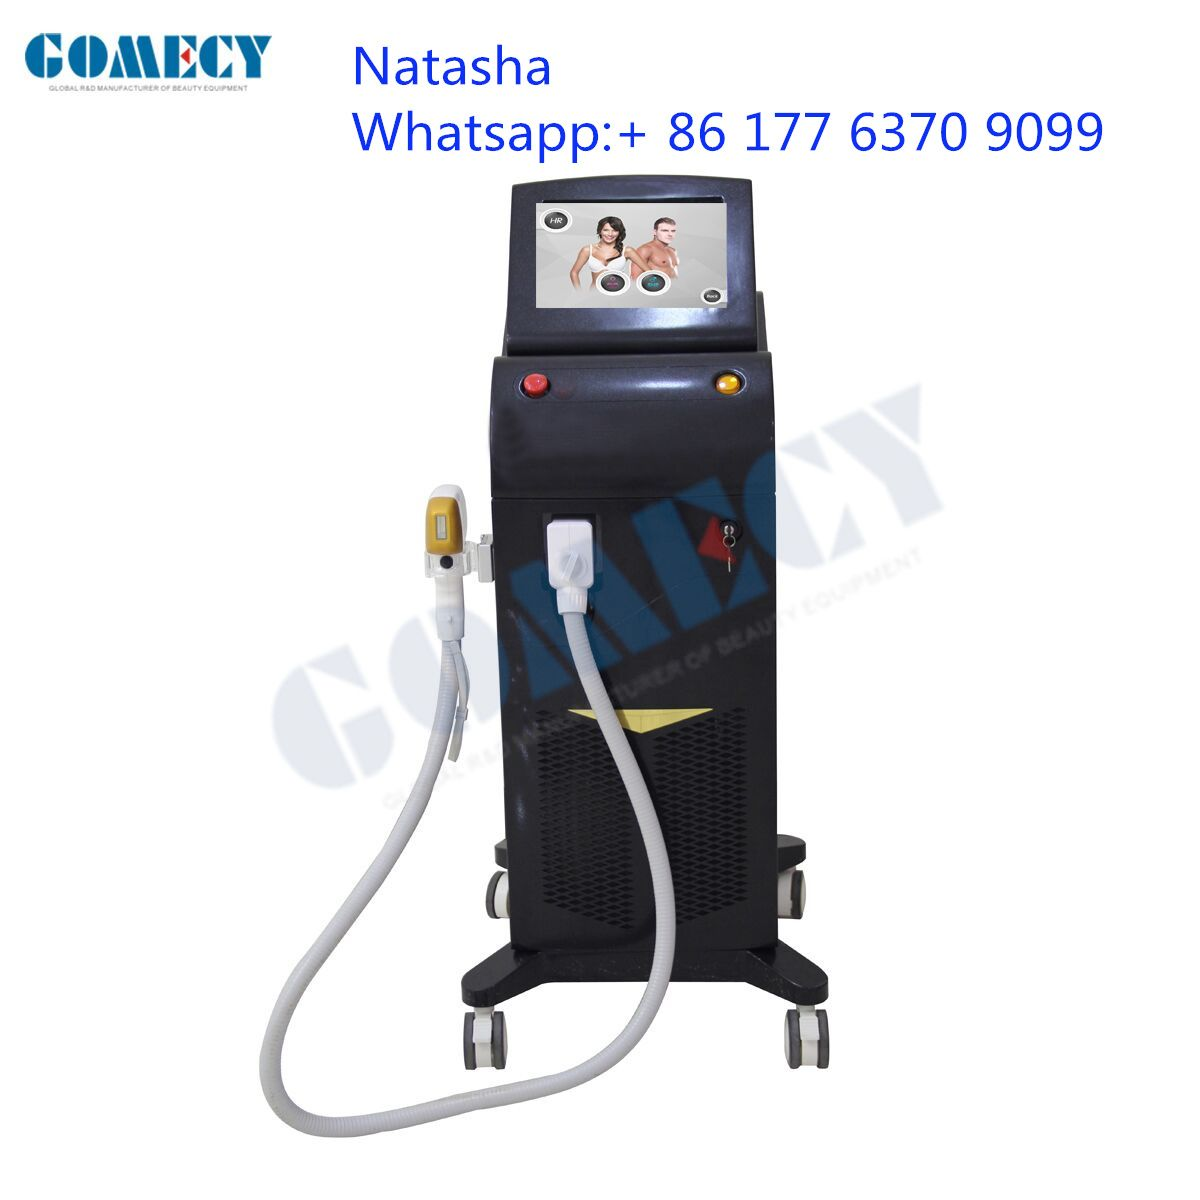 808nm diode laser hair removal machine. in 2020 Laser